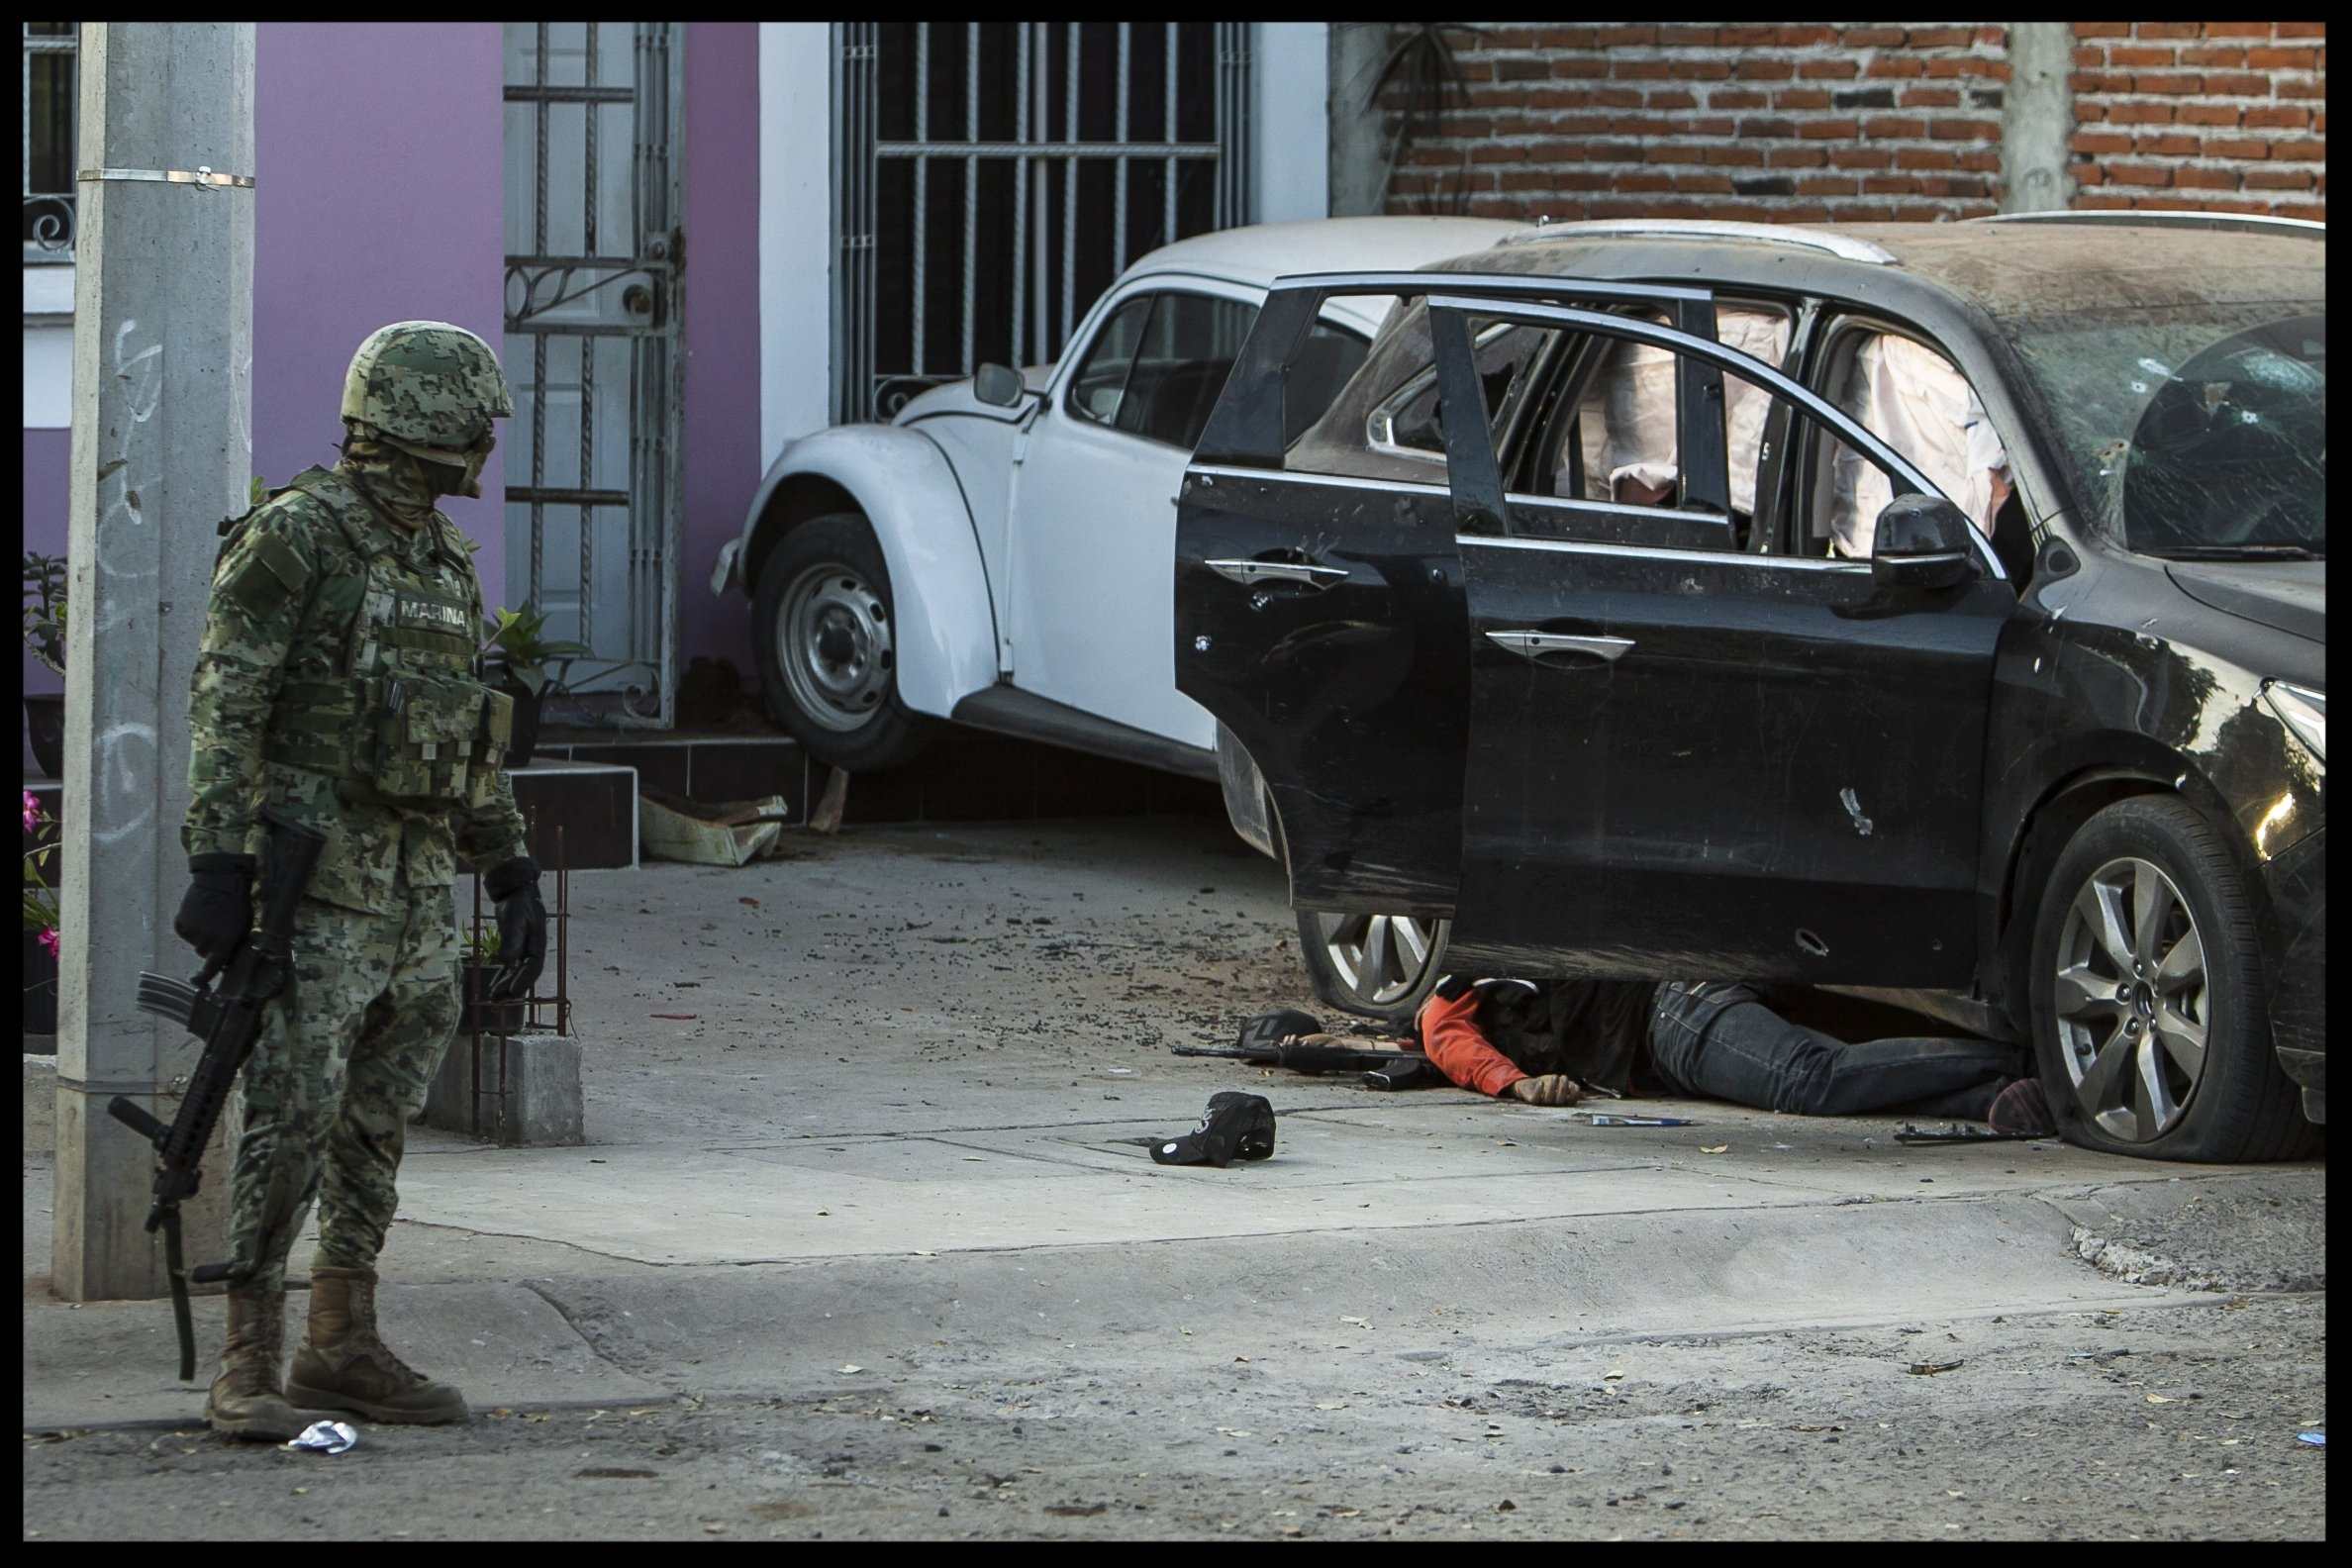 A Mexican marine looks at the body of a gunman next to a vehicle after a gun fight in Culiacan, Mexico, February 7, 2017. (AP Photo/Rashide Frias)